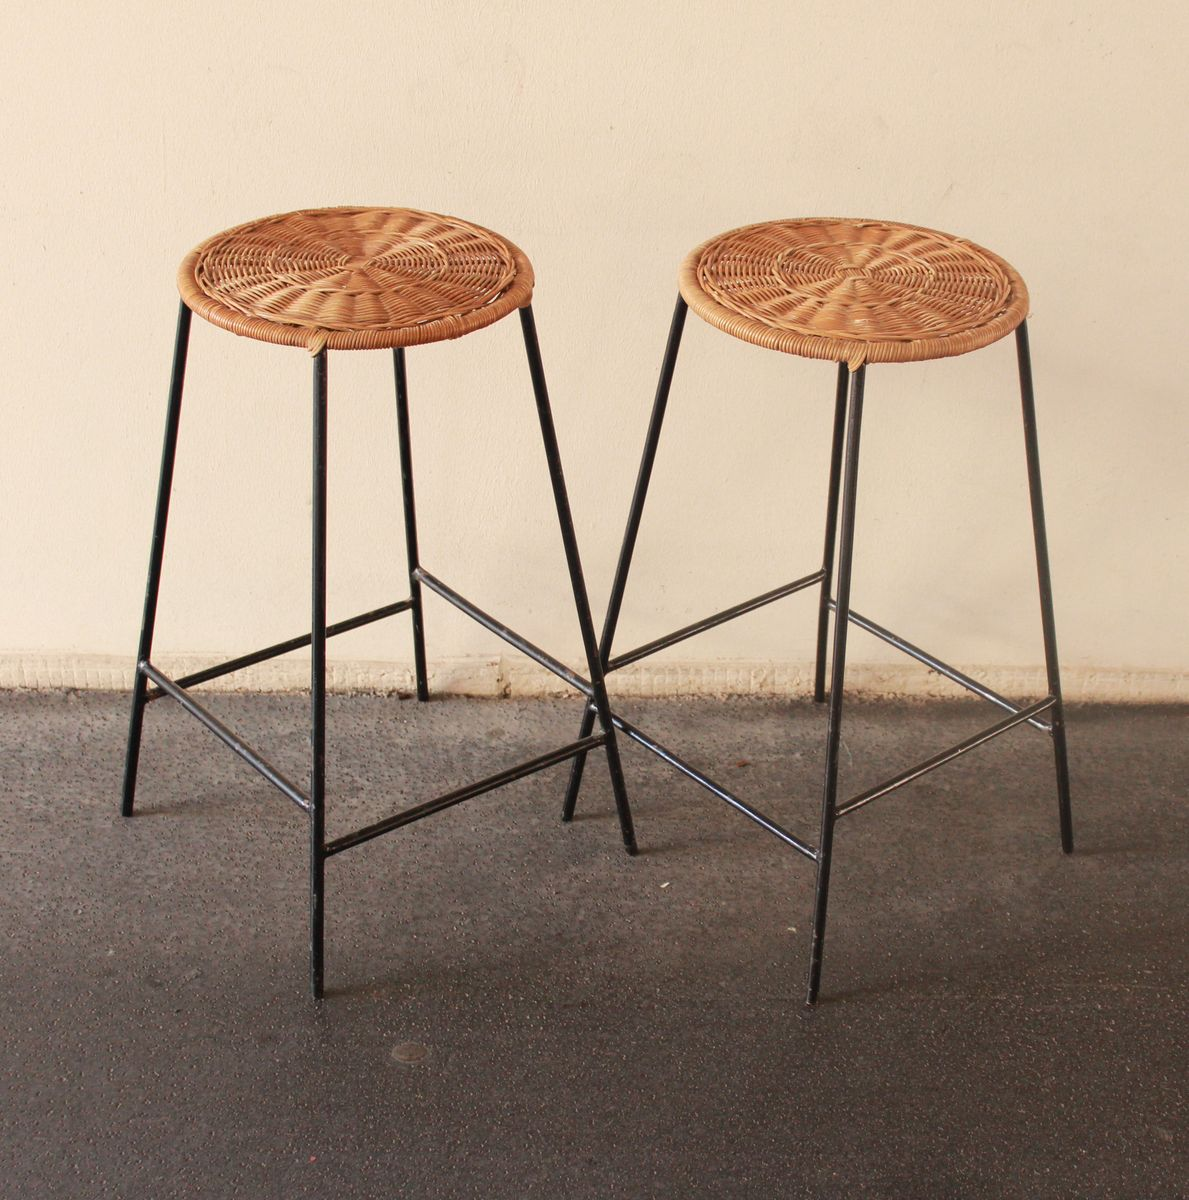 Rattan Amp Metal Bar Stools 1950s Set Of 2 For Sale At Pamono